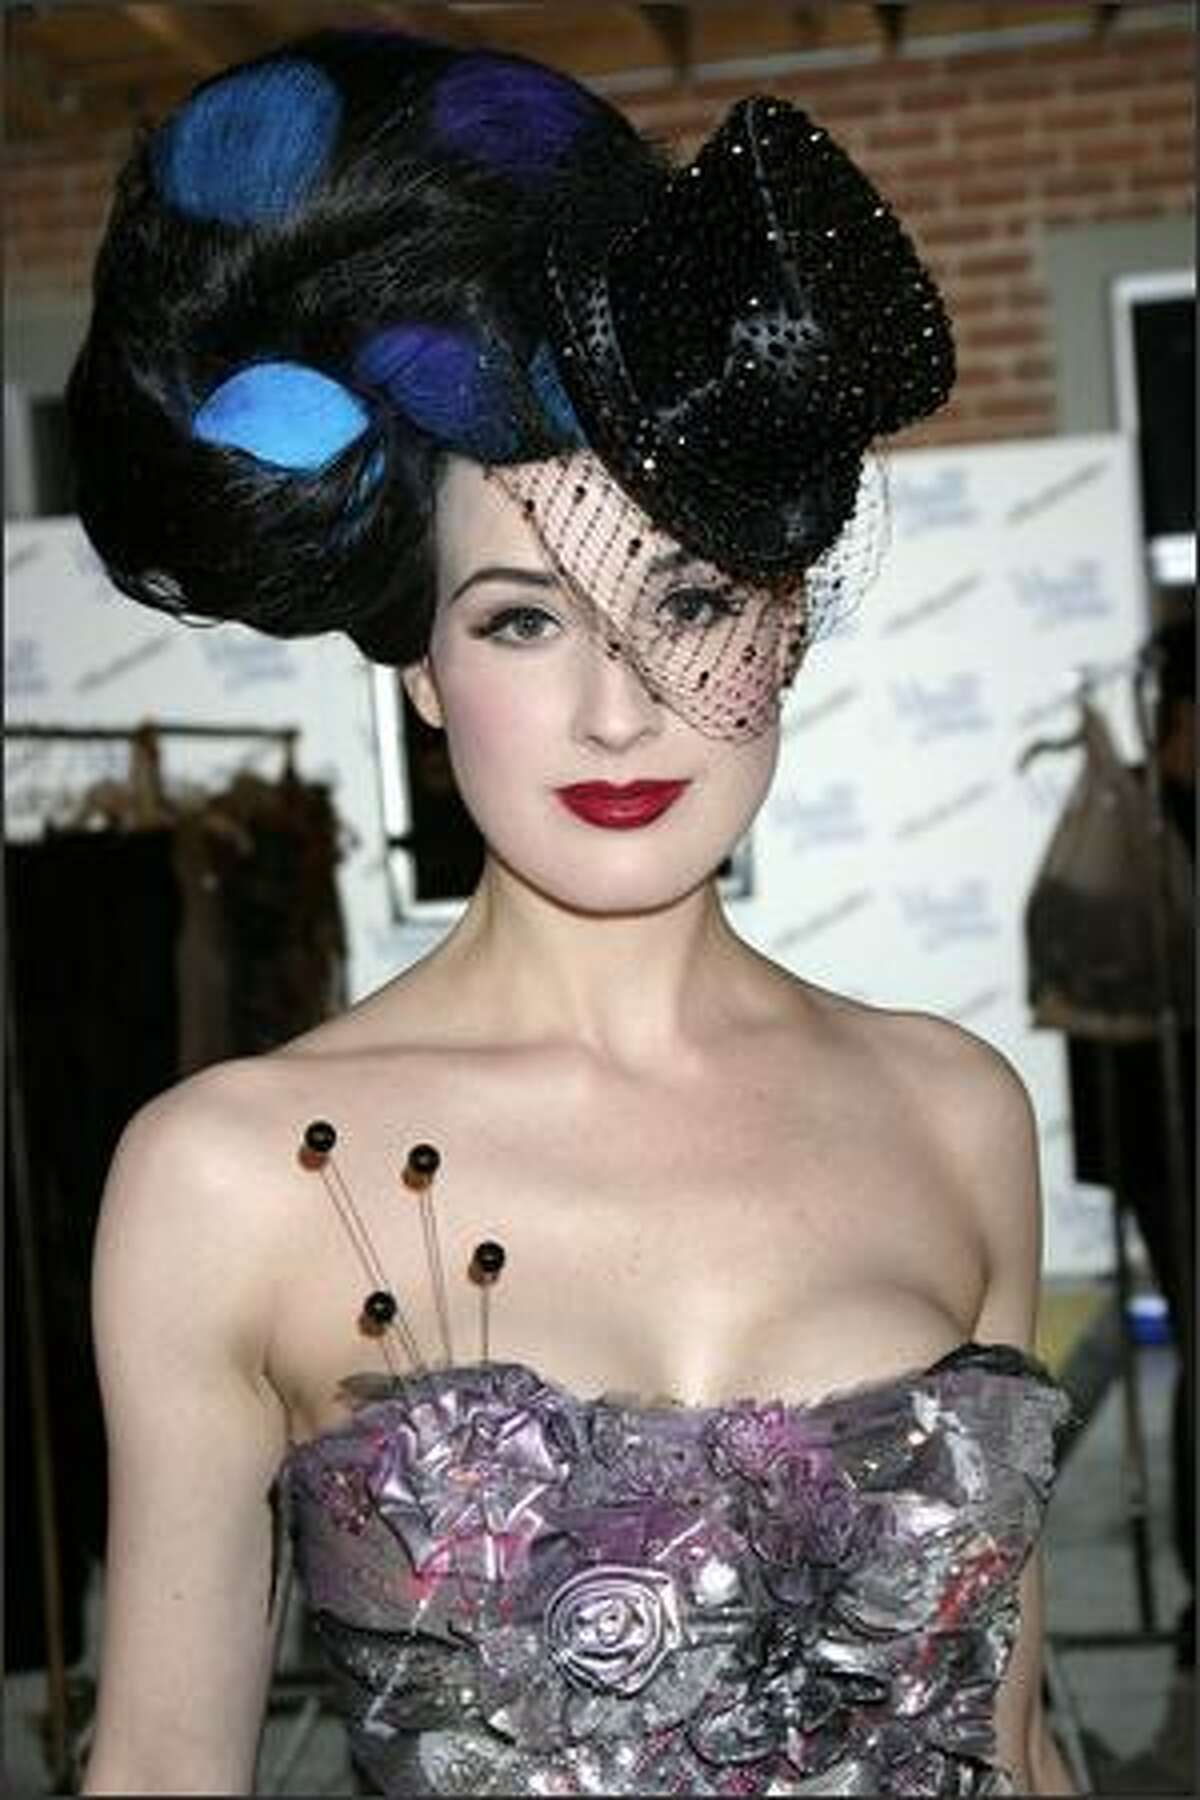 Dita Von Teese attends Heatherette Holiday 2004, on April 1, 2004 in Culver City, Calif.